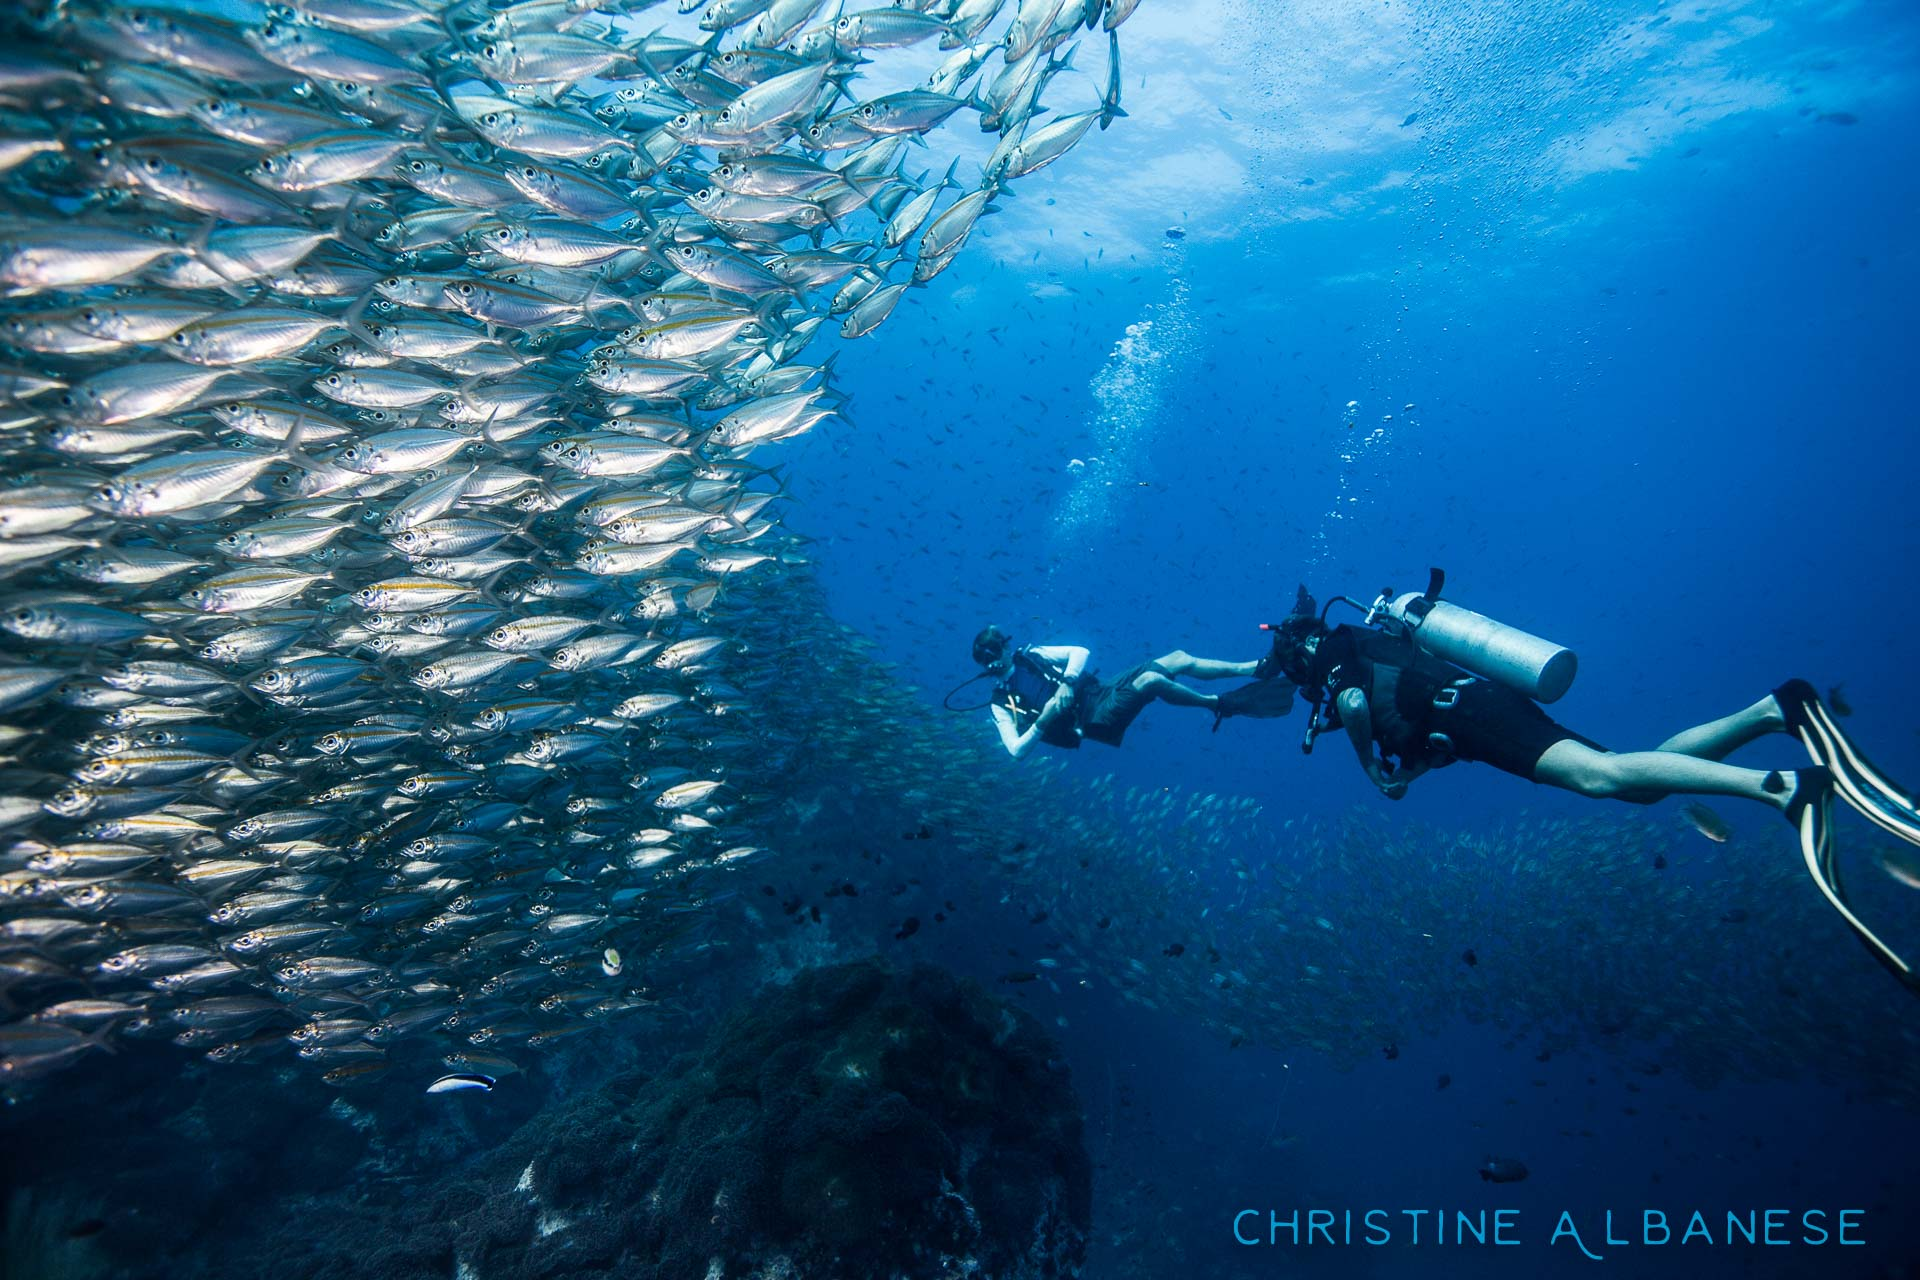 Chumphon Pinnacle is home to all kinds of amazing things! Definitely one of my favorite dive sites around Koh Tao. 😍  #underwater #underwaterphotography #uwphotography #EarthCapture #padi #wideangle #canon6d #canon1740 #ikelite #ds160 #scuba #scubadiving #divinglife #eatsleepscuba #scubaearth #natgeo #chumphon #kohtao #thailand #ocean #marinelife #adventure #discover #underwaterdiving #schoolingfish #abundance #awesome